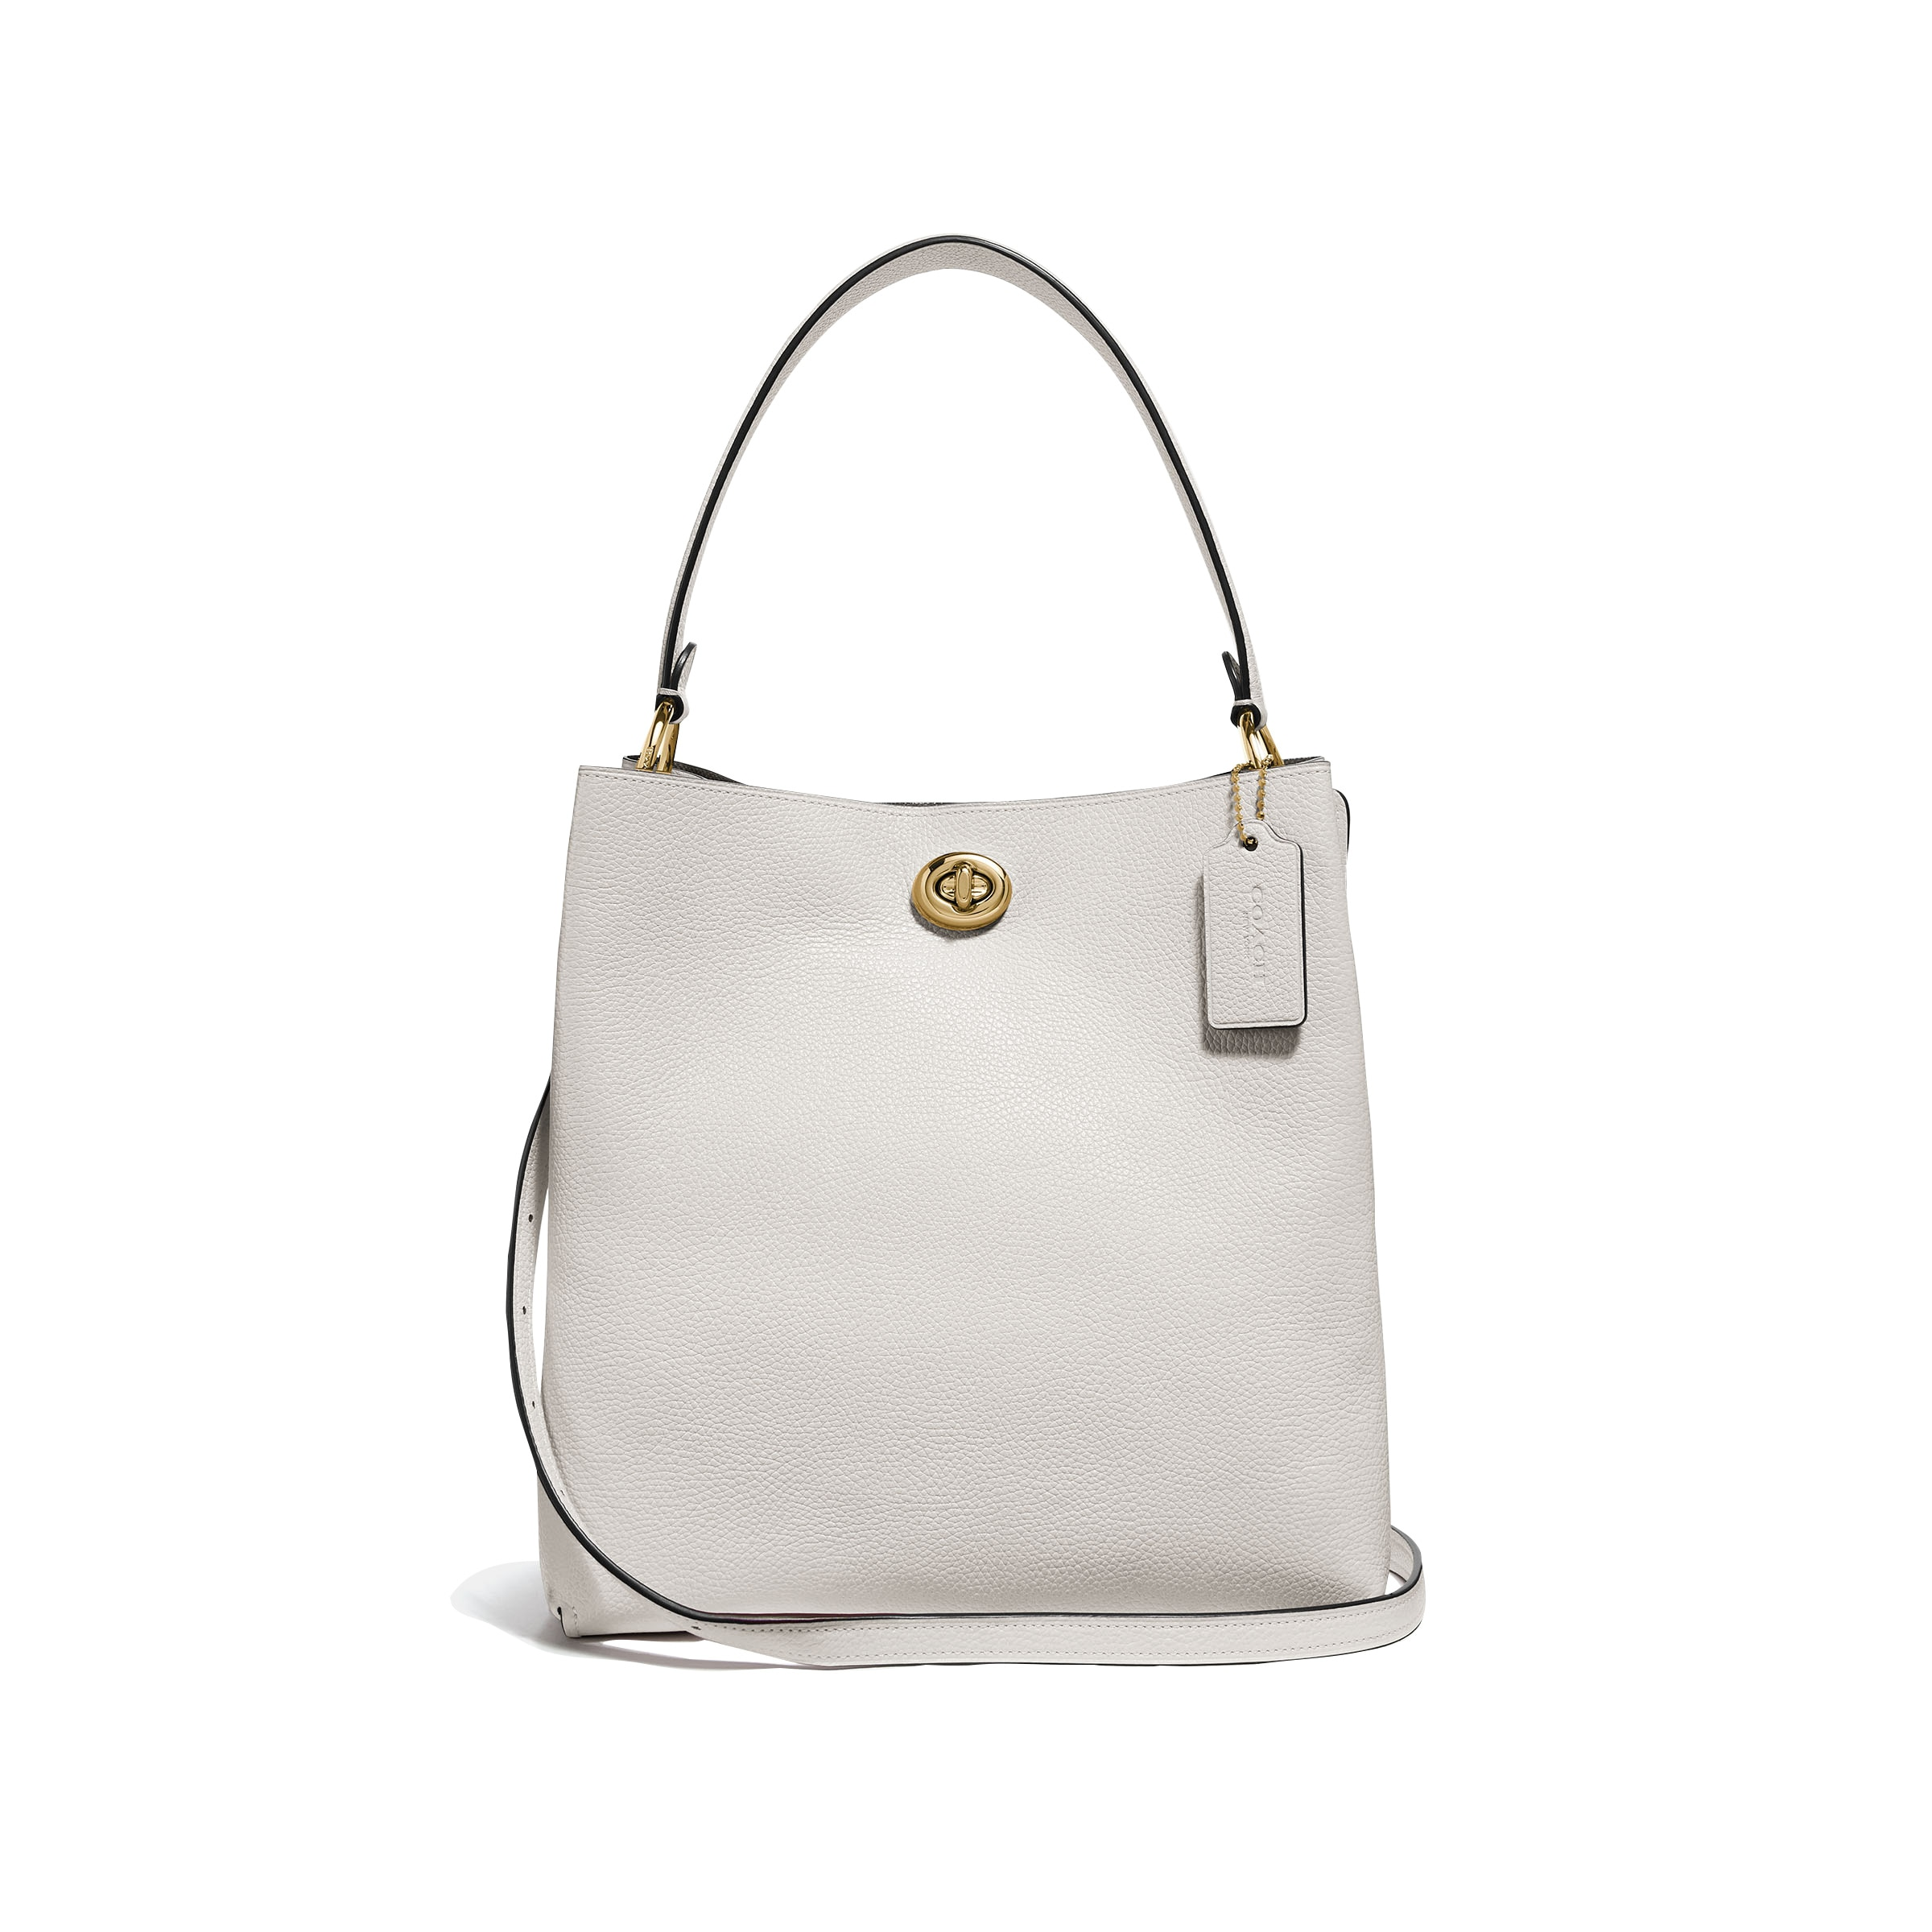 6a8312018a1a9 BROWSE NEW BAGS · Charlie Bucket Bag